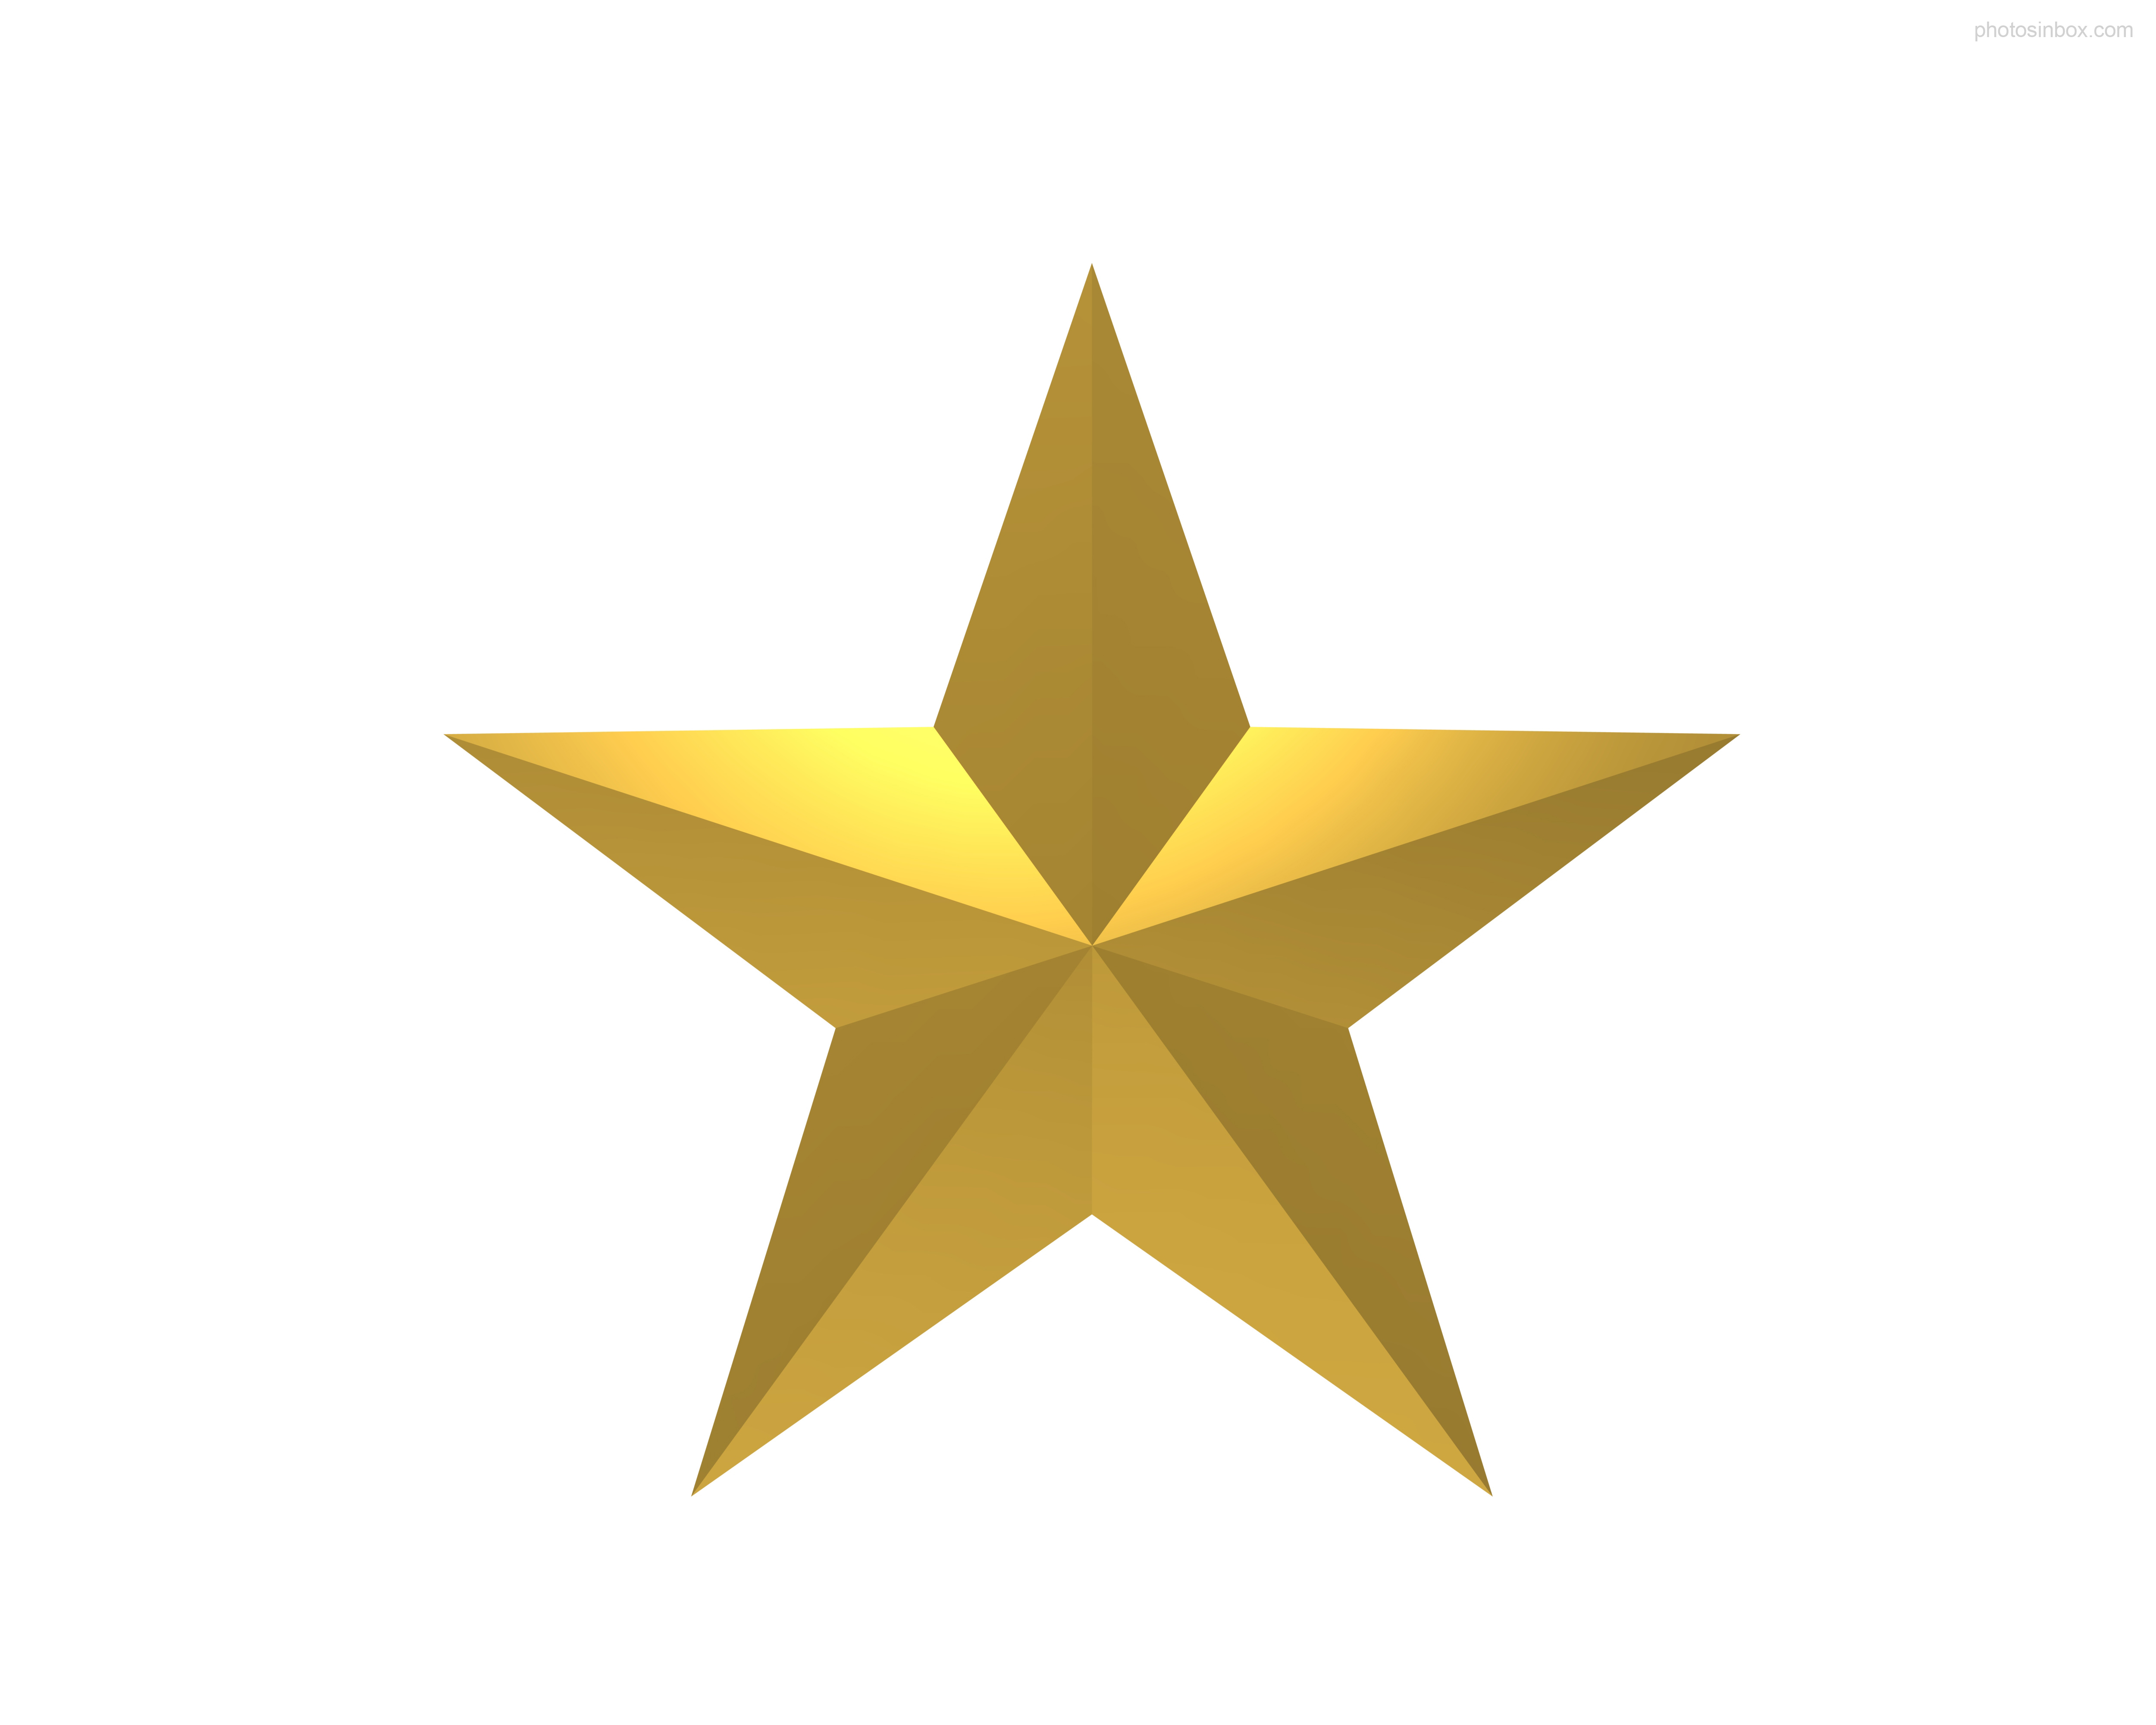 gold star clipart transparent background